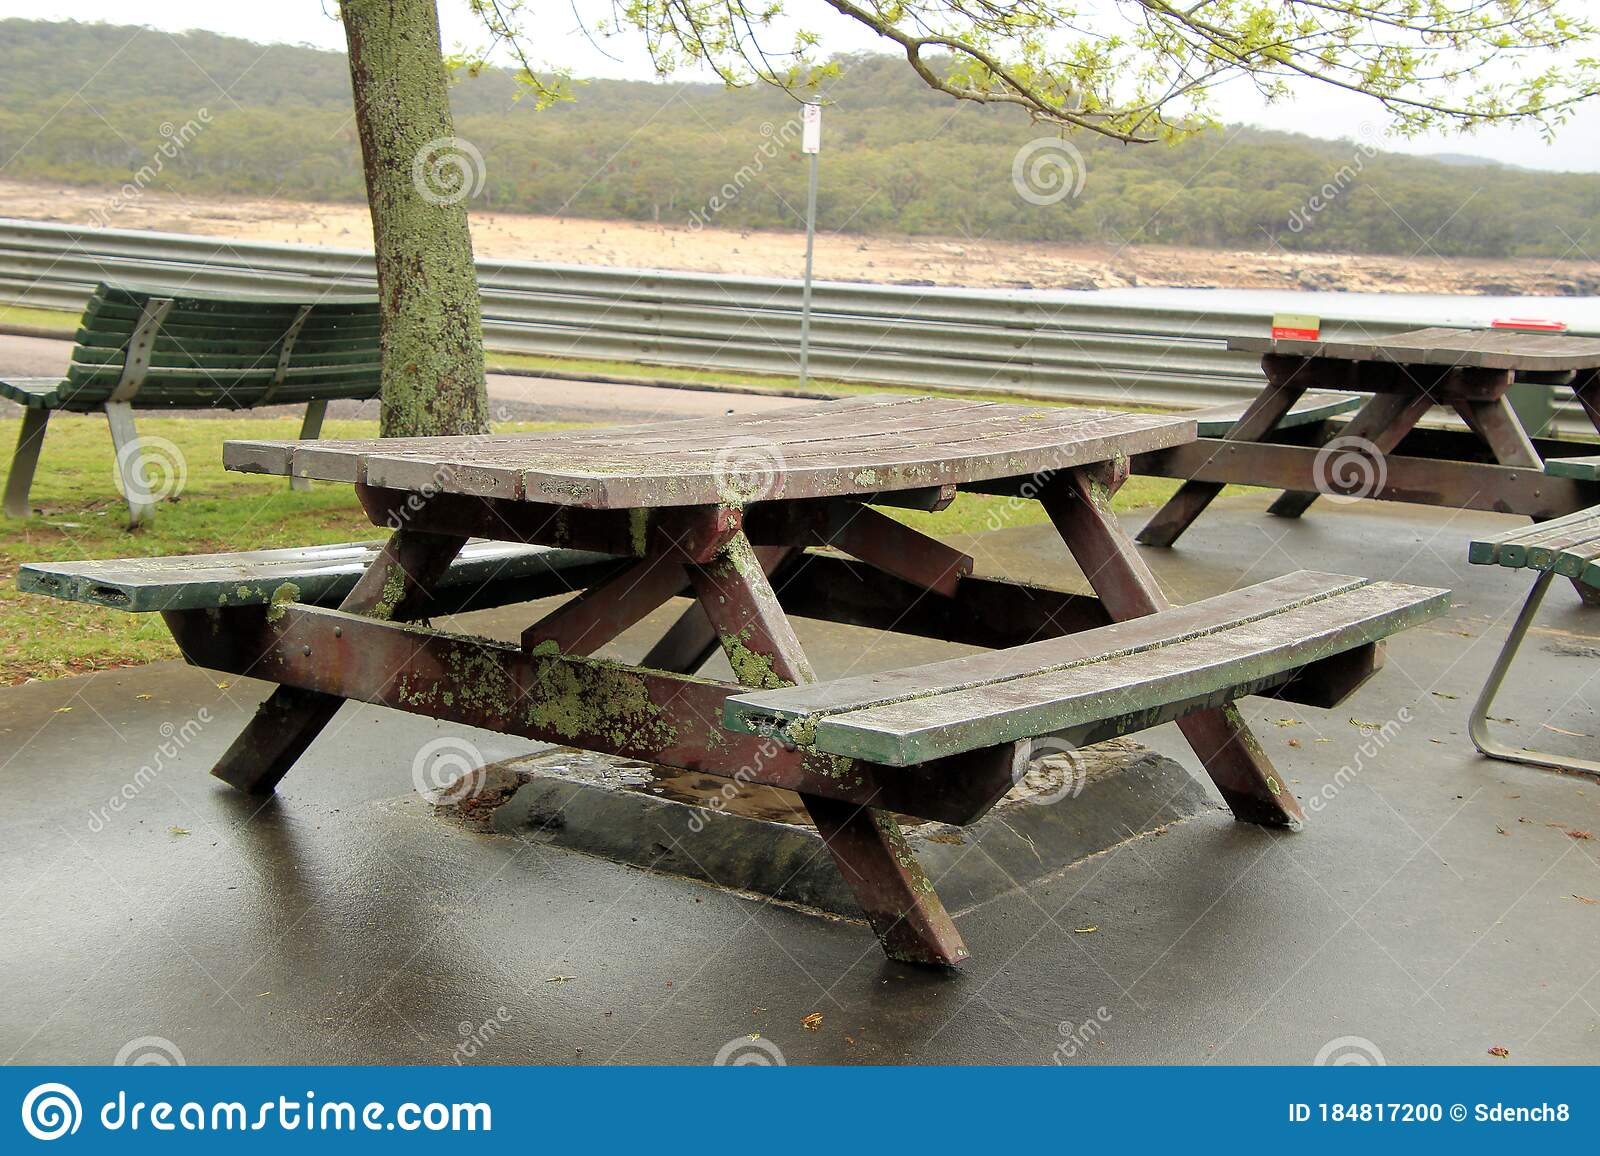 Picture of: Picnic Spot With Tables And Bench Seats Overgrown With Lichen Stock Photo Image Of Tables Lichen 184817200